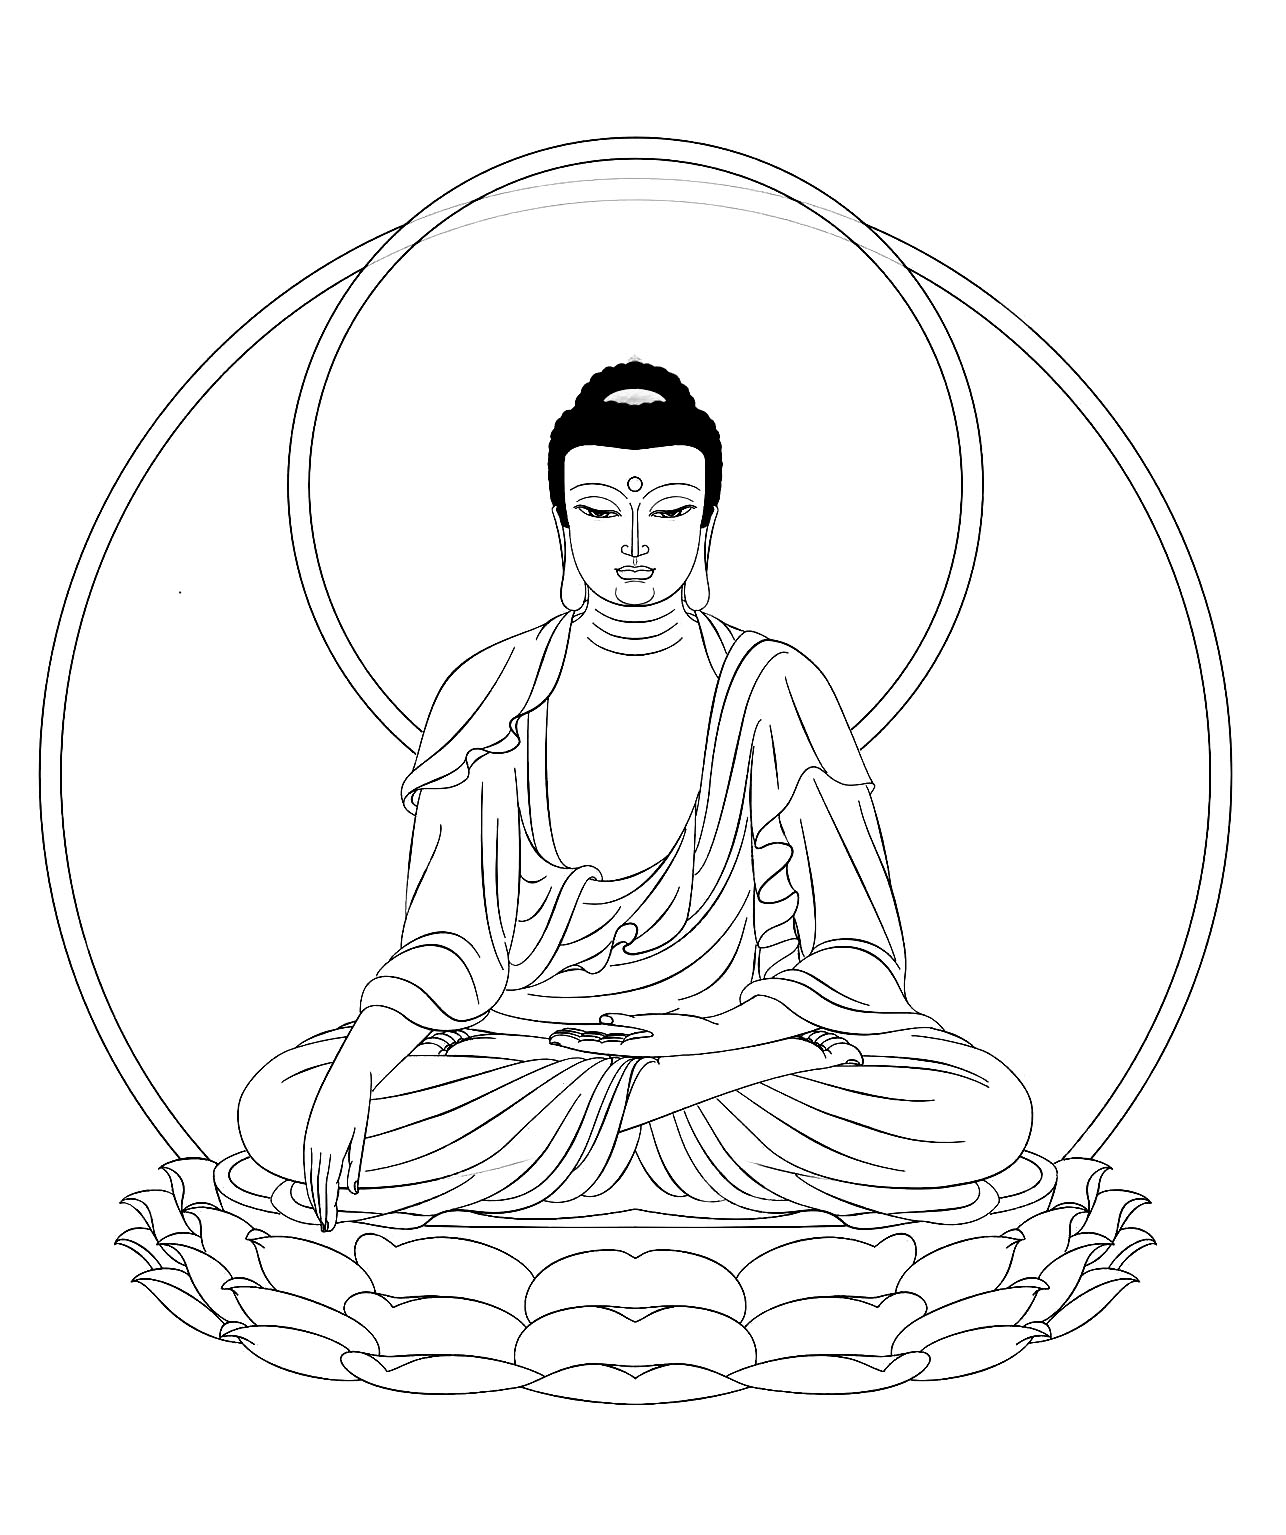 A simple drawing representing King Bouddha